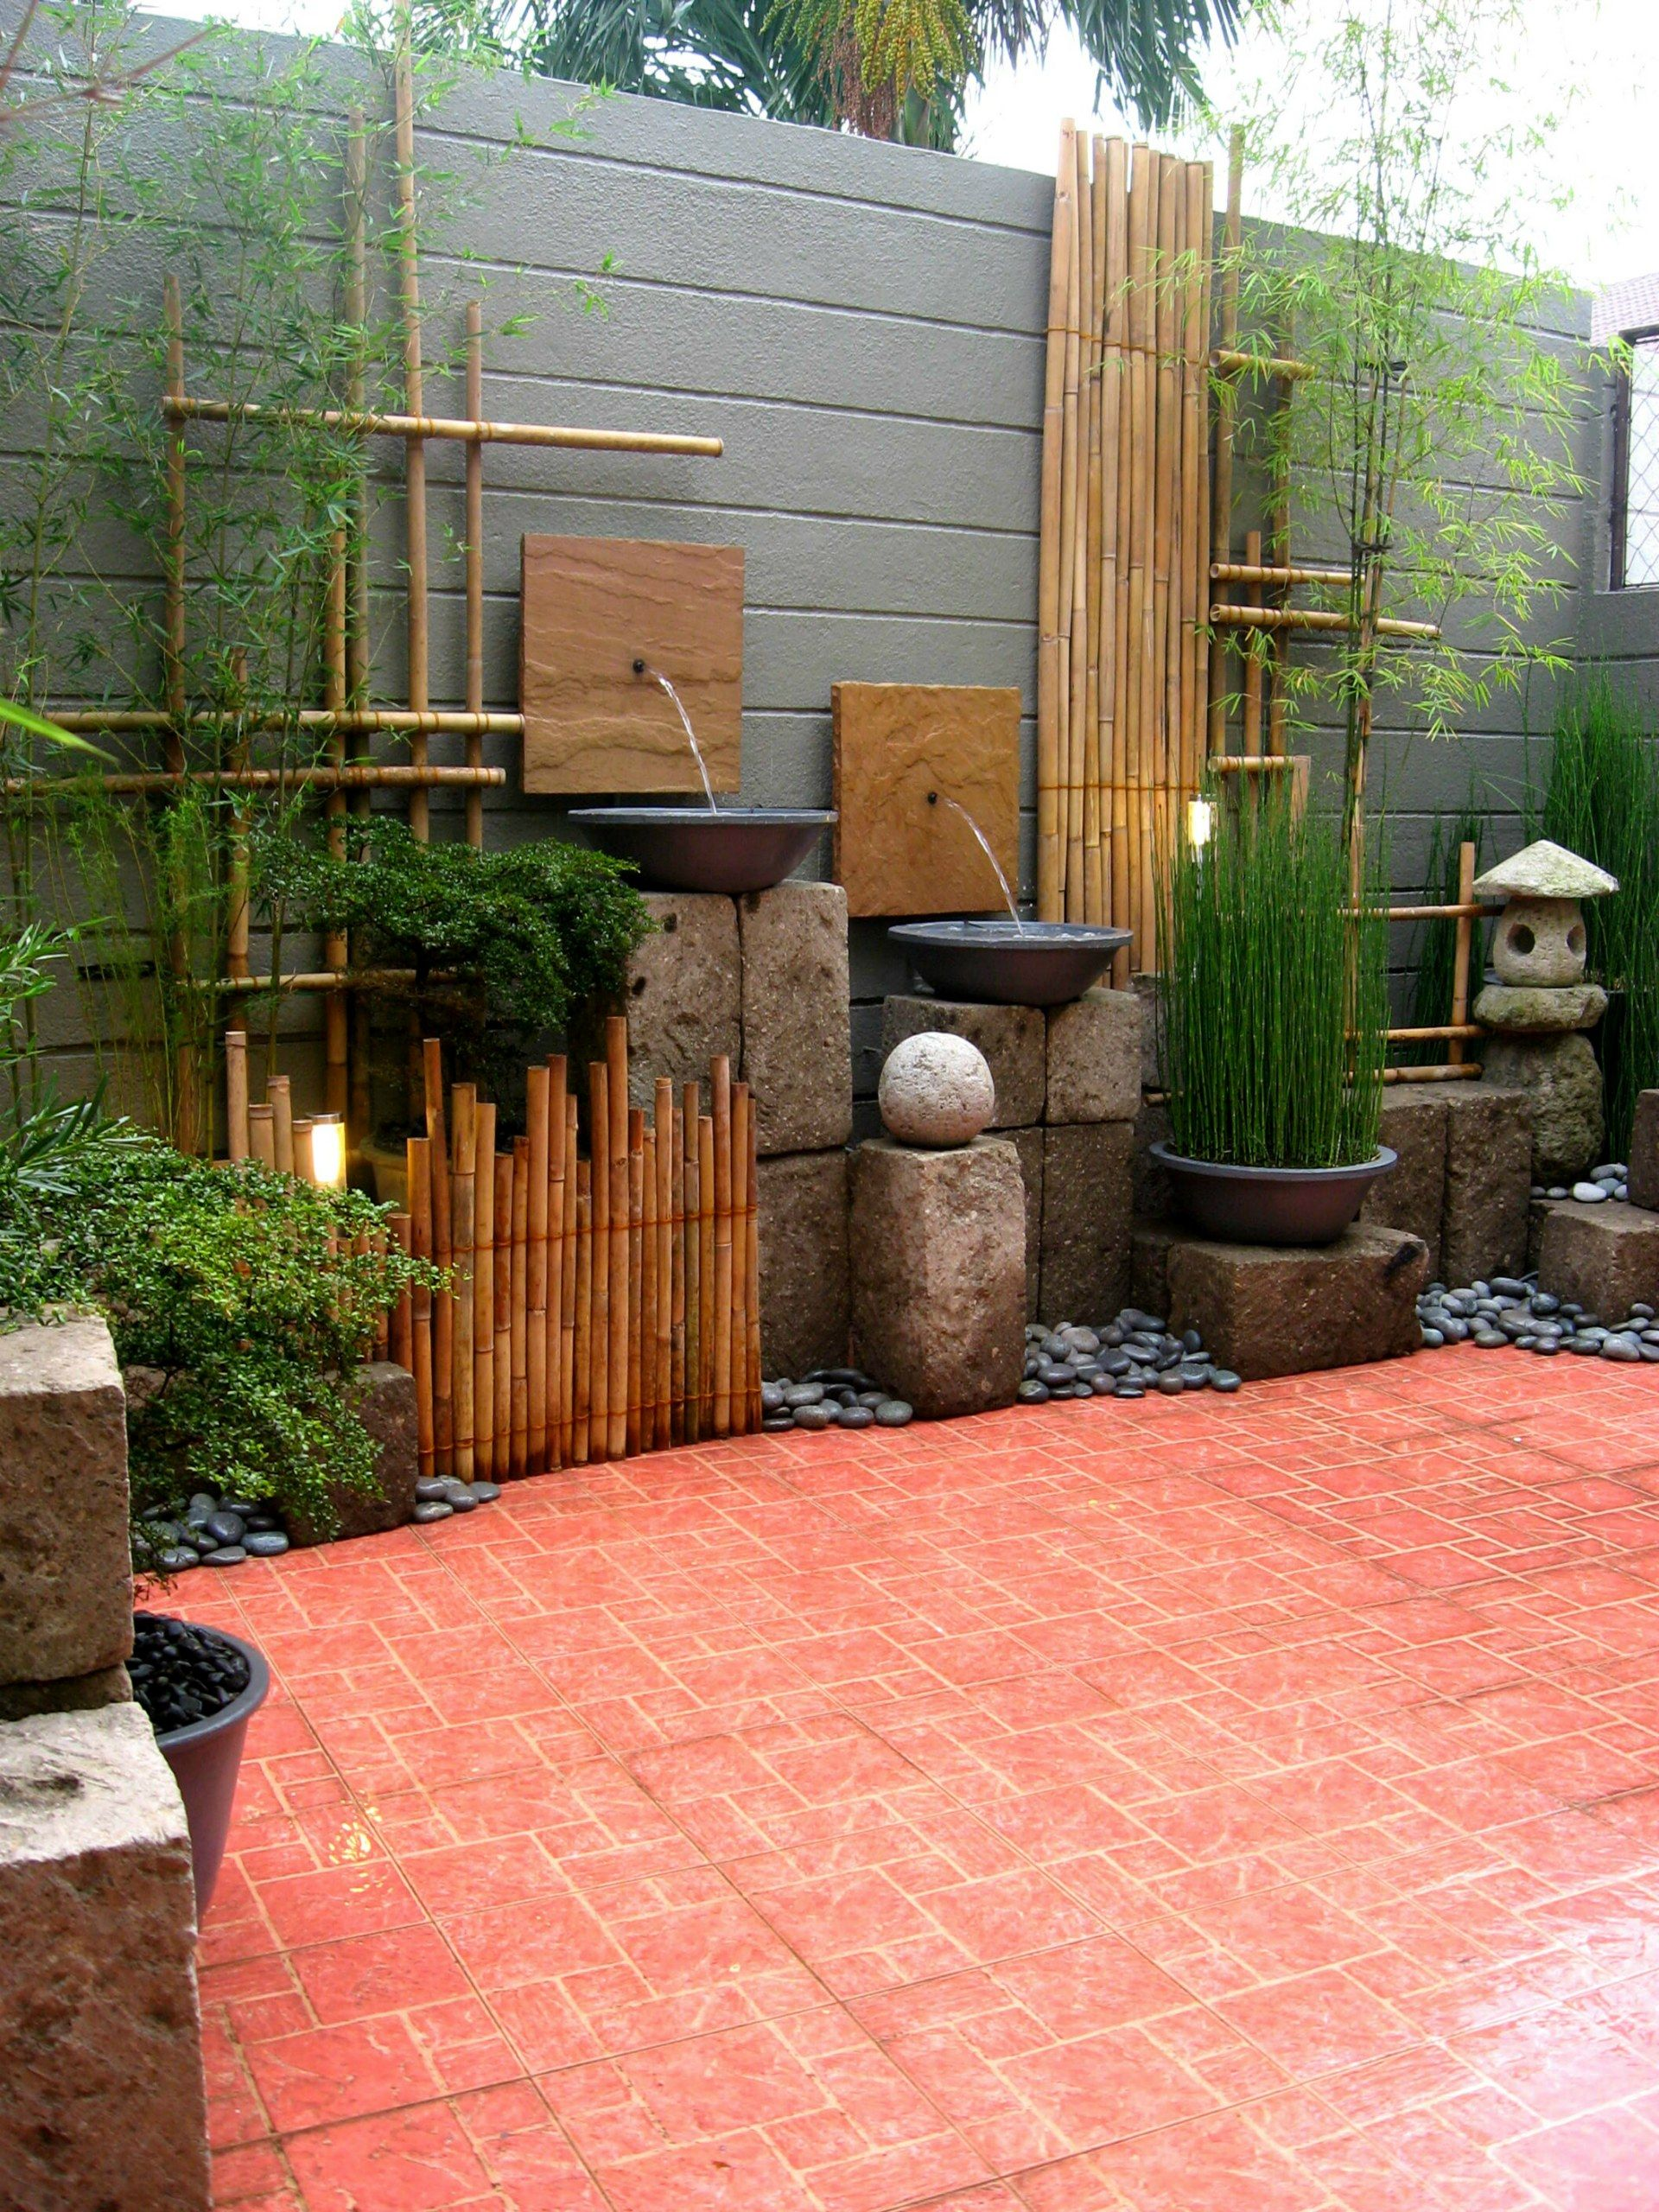 Landscape wall design ideas from primescape philippines for Home garden design in the philippines